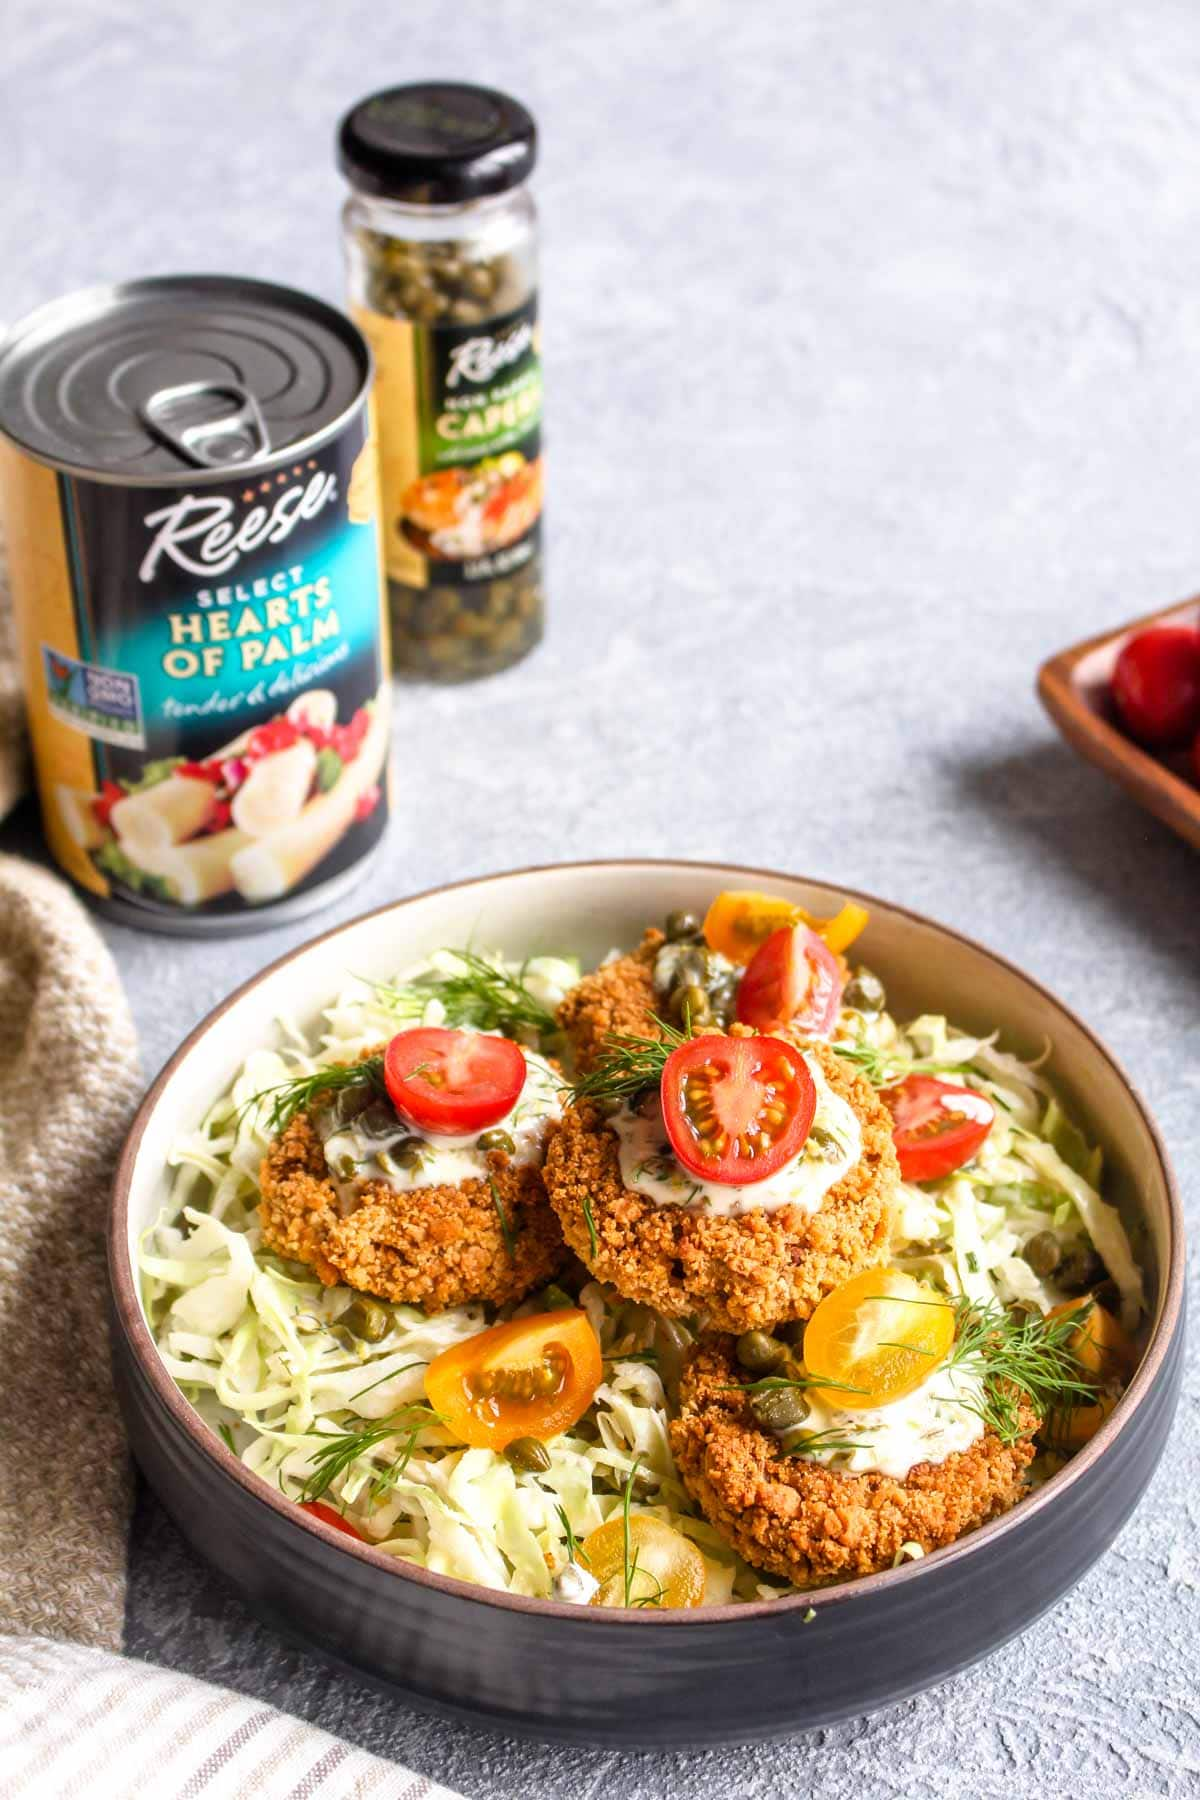 Hearts Of Palm Cakes with Caper Aioli are a fun veggie packed spin on a crab cake. This recipe is vegan, gluten, free and full of flavor! The caper aioli is the perfect bright and creamy compliment to the crispy cakes. | CatchingSeeds.com